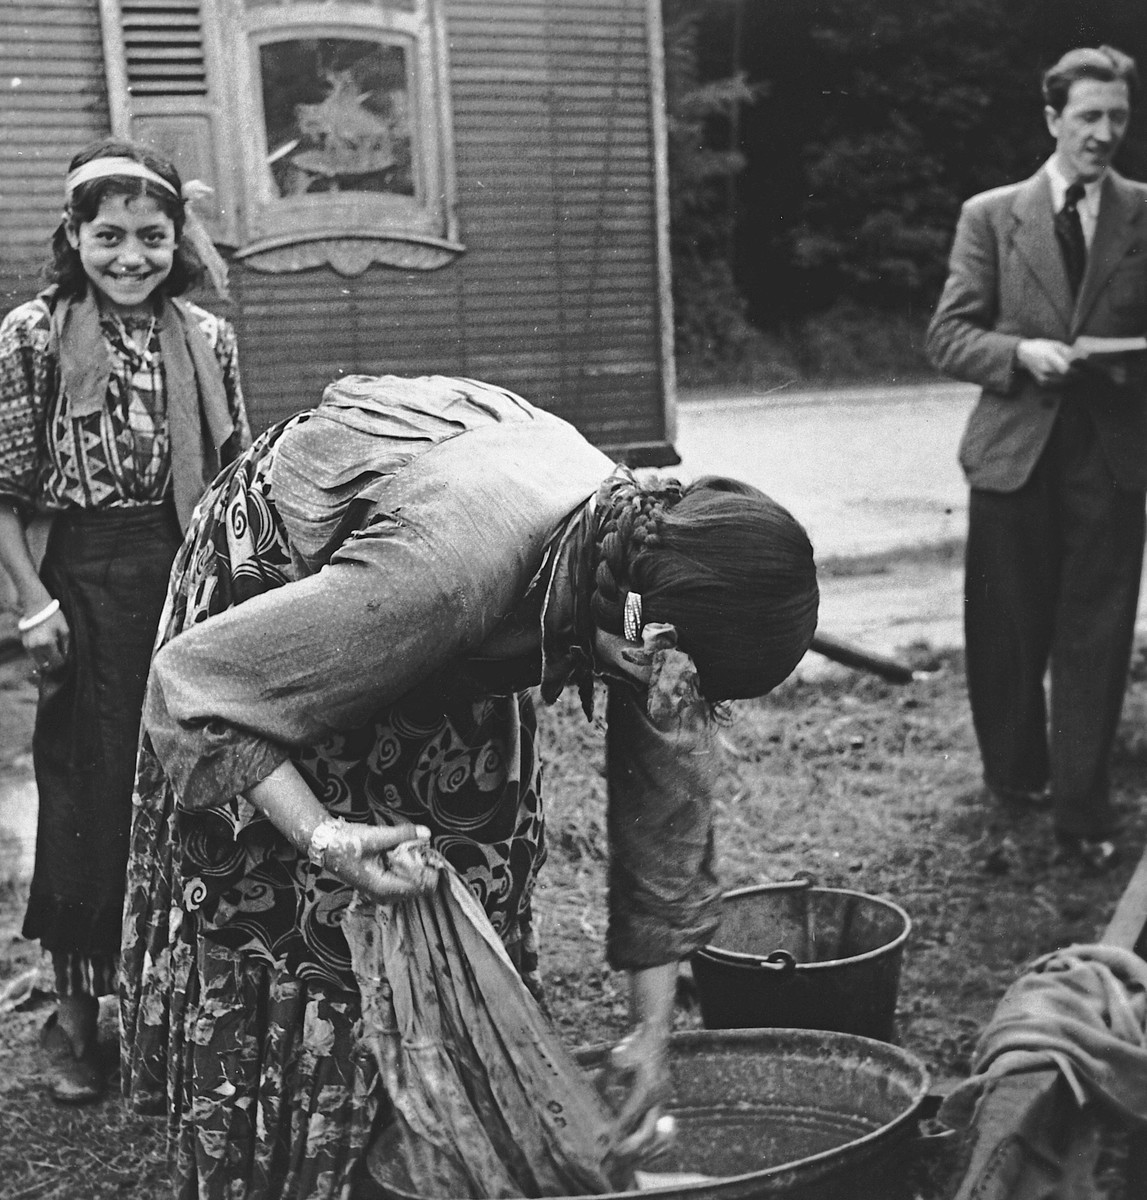 A Roma (Gypsy) woman washes clothing in a tub, as a young girl smiles in the background.